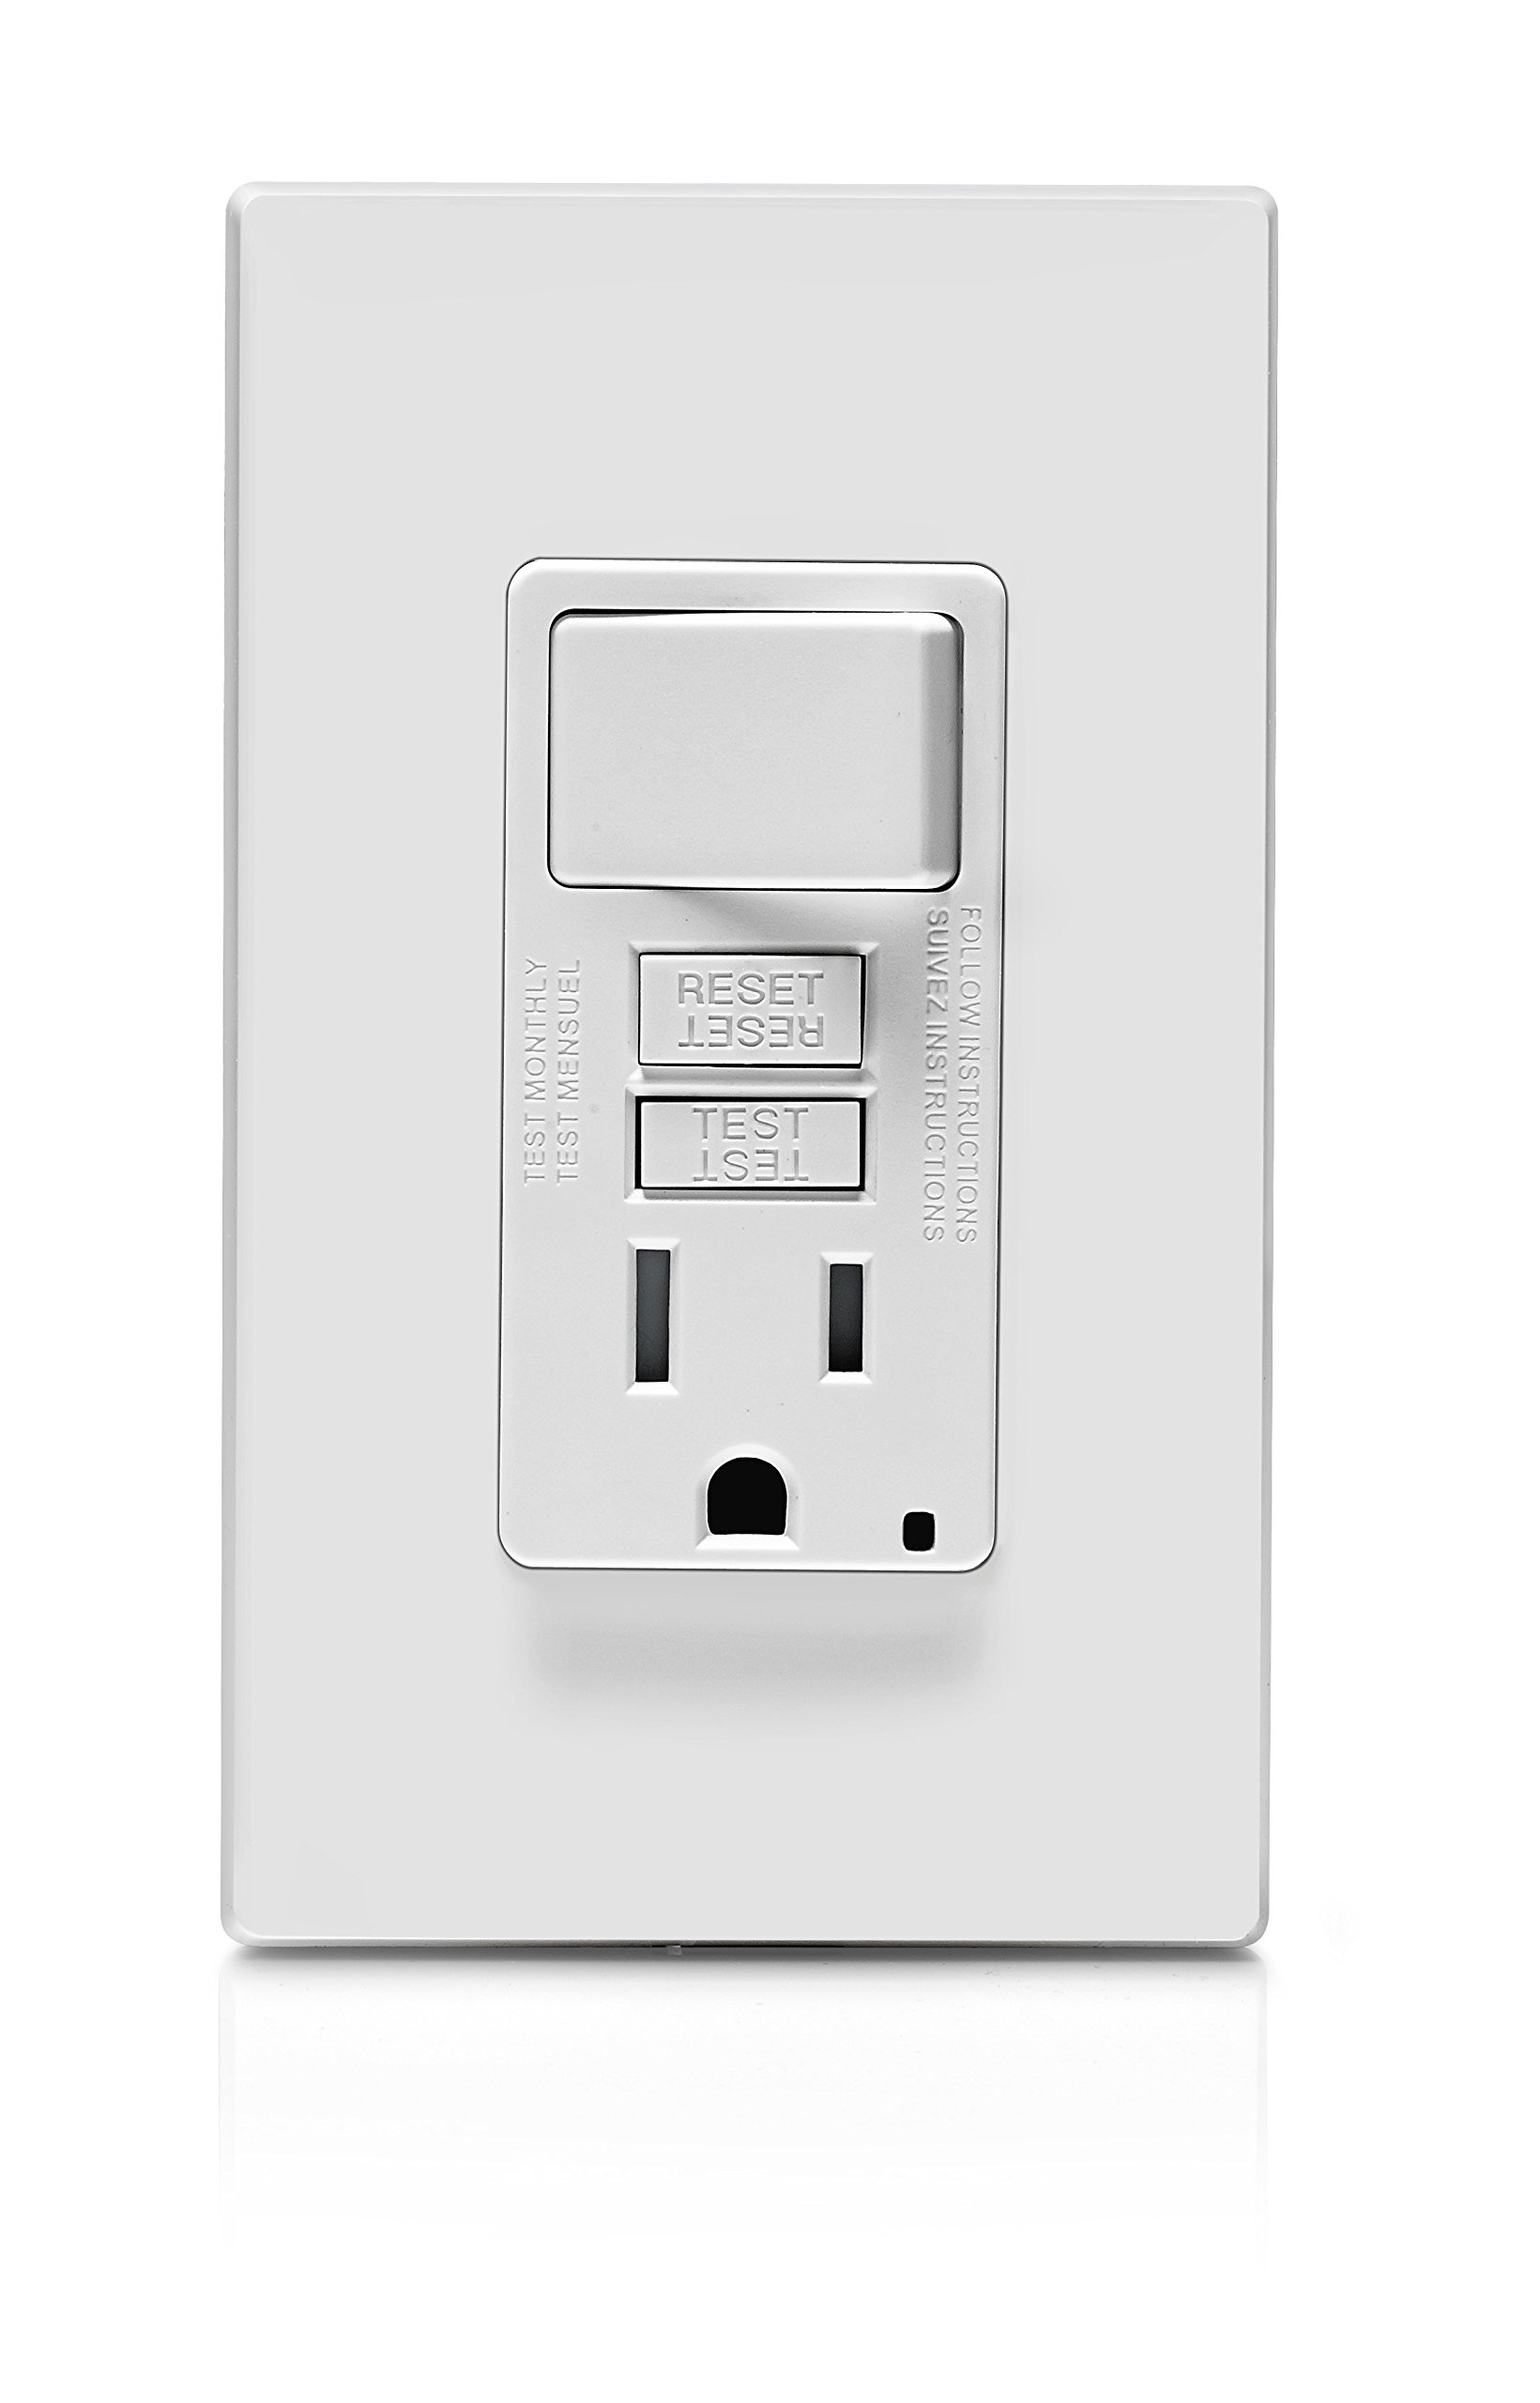 Leviton GFSW1-W Self-Test SmartlockPro Slim GFCI Combination Switch Tamper-Resistant Receptacle with LED Indicator, 15 Amp, White